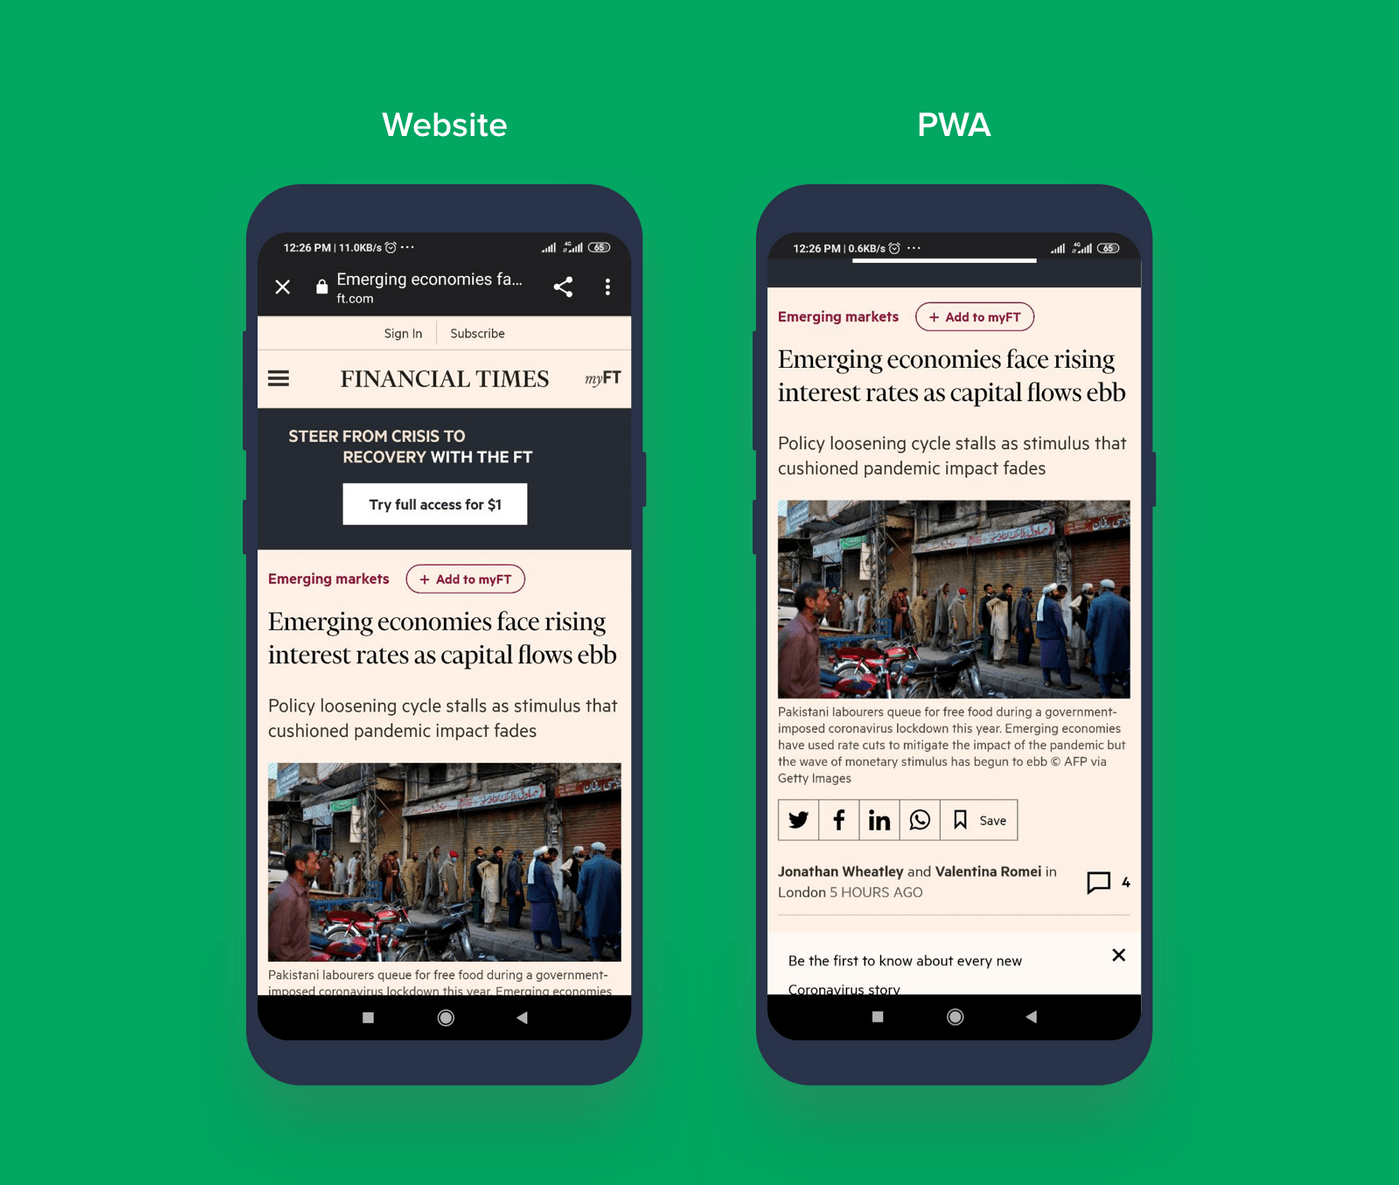 The difference between PWA and website